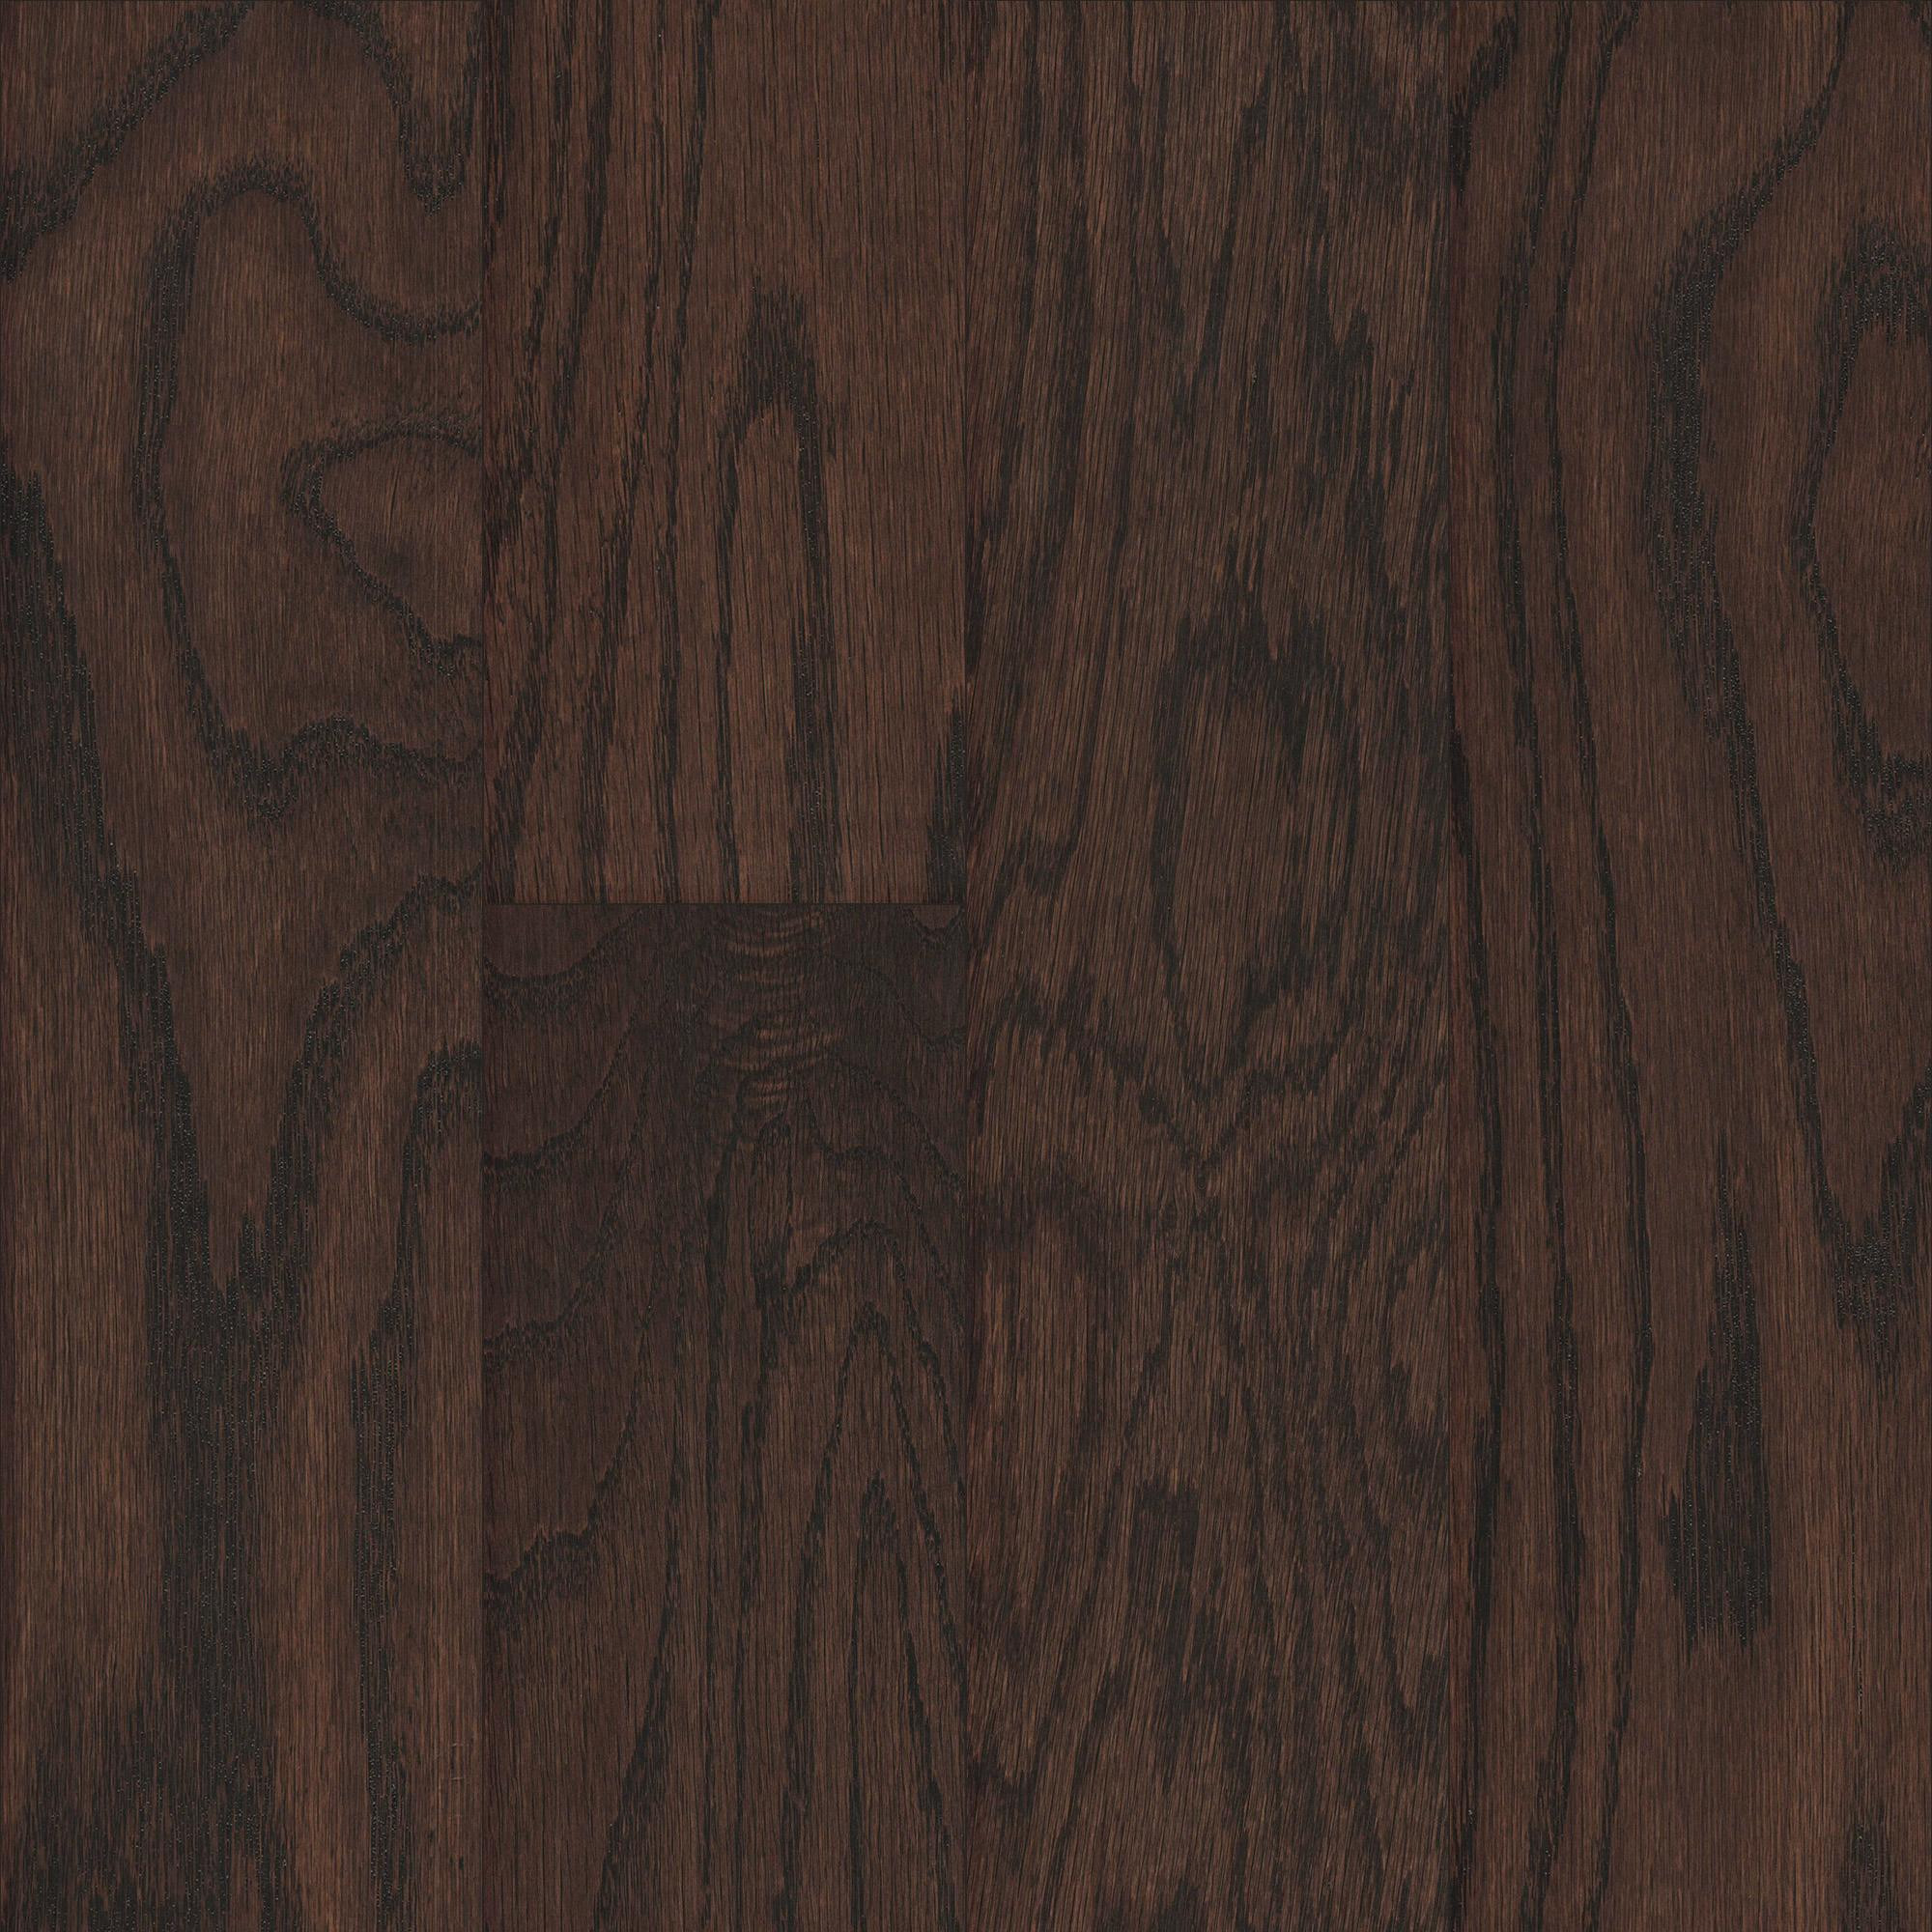 Bamboo Vs Engineered Hardwood Flooring Of Mullican Ridgecrest Oak Burnt Umber 1 2 Thick 5 Wide Engineered Intended for Mullican Ridgecrest Oak Burnt Umber 1 2 Thick 5 Wide Engineered Hardwood Flooring